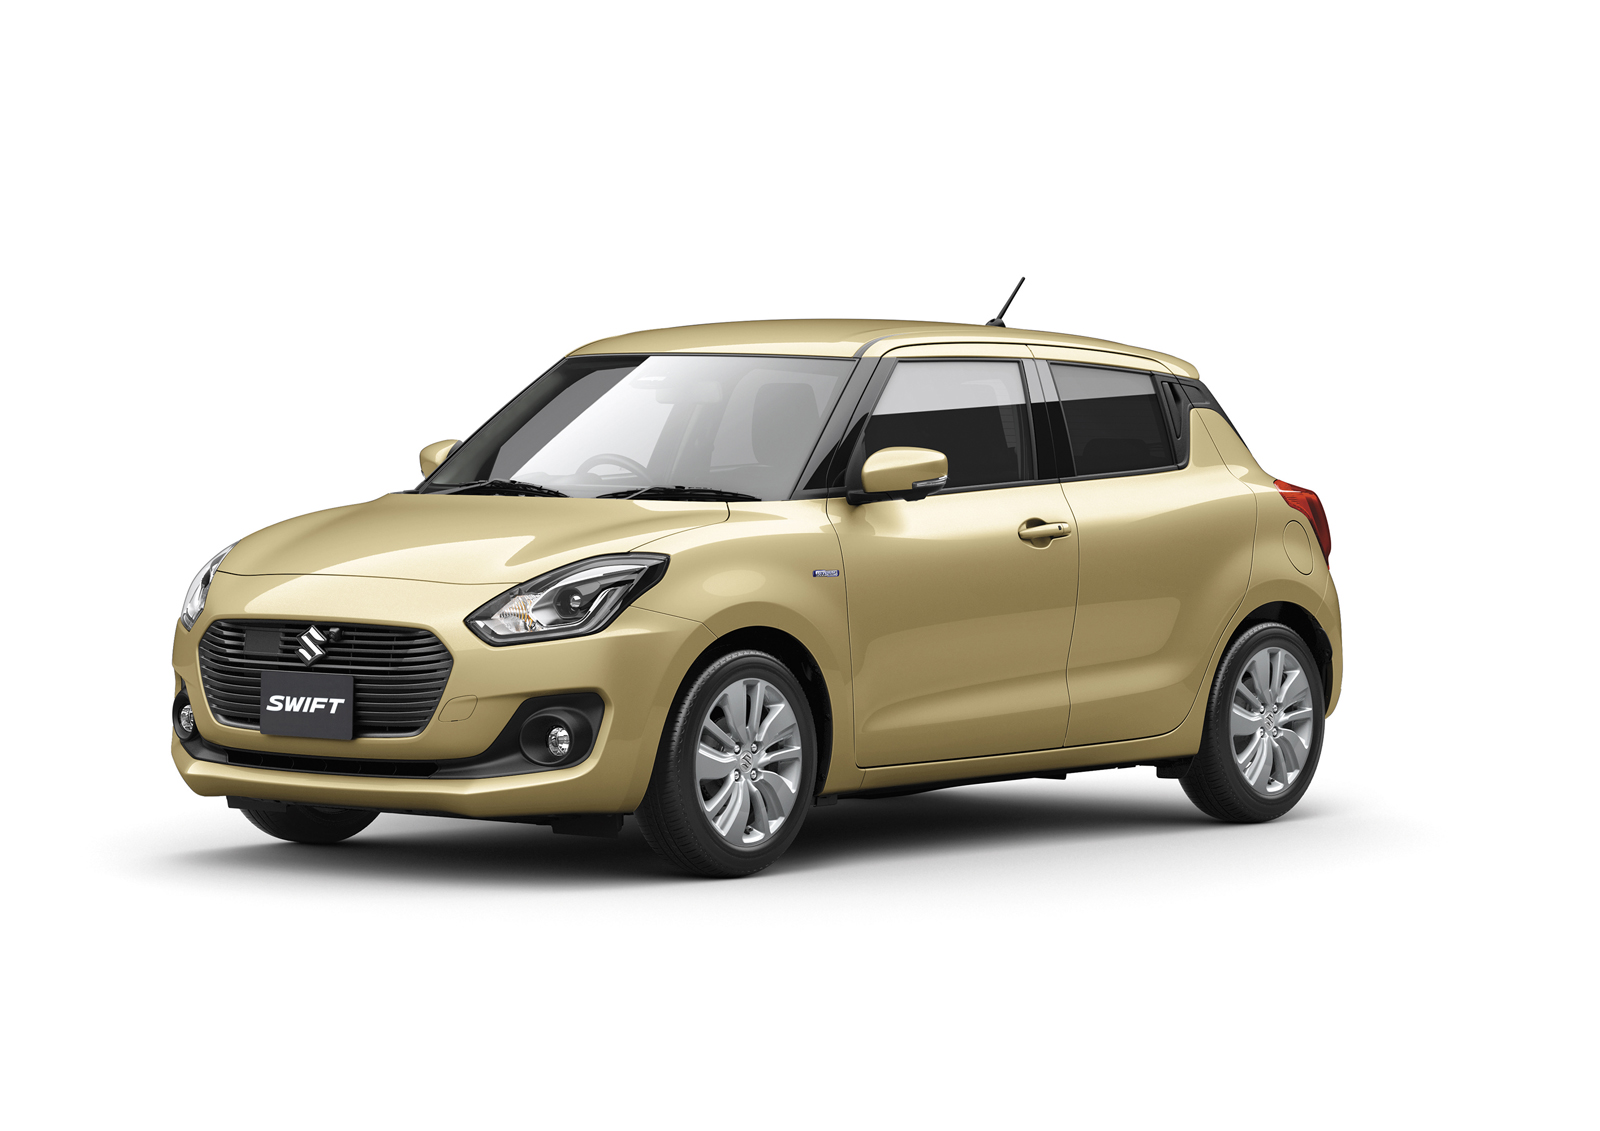 Suzuki Swift 2017 (3)